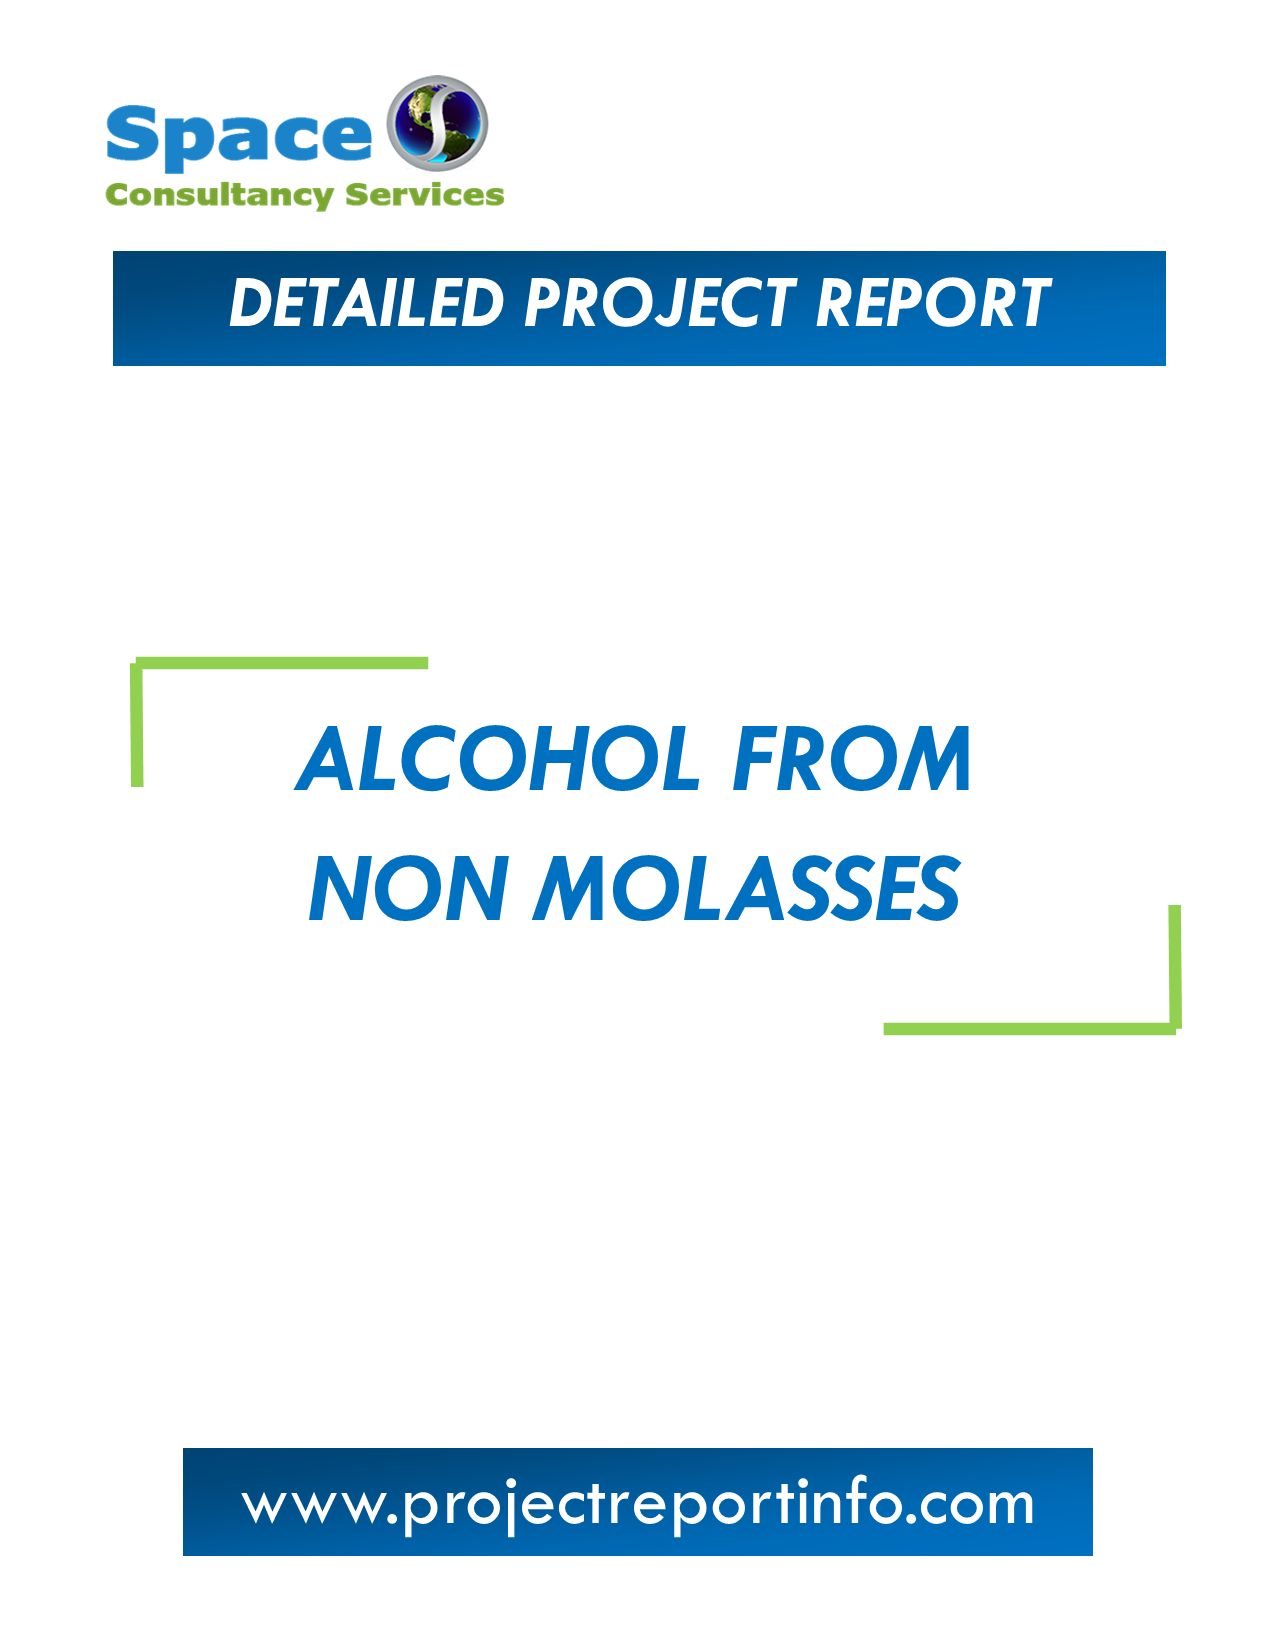 Project Report on Alcohol from Non Molasses Manufacturing